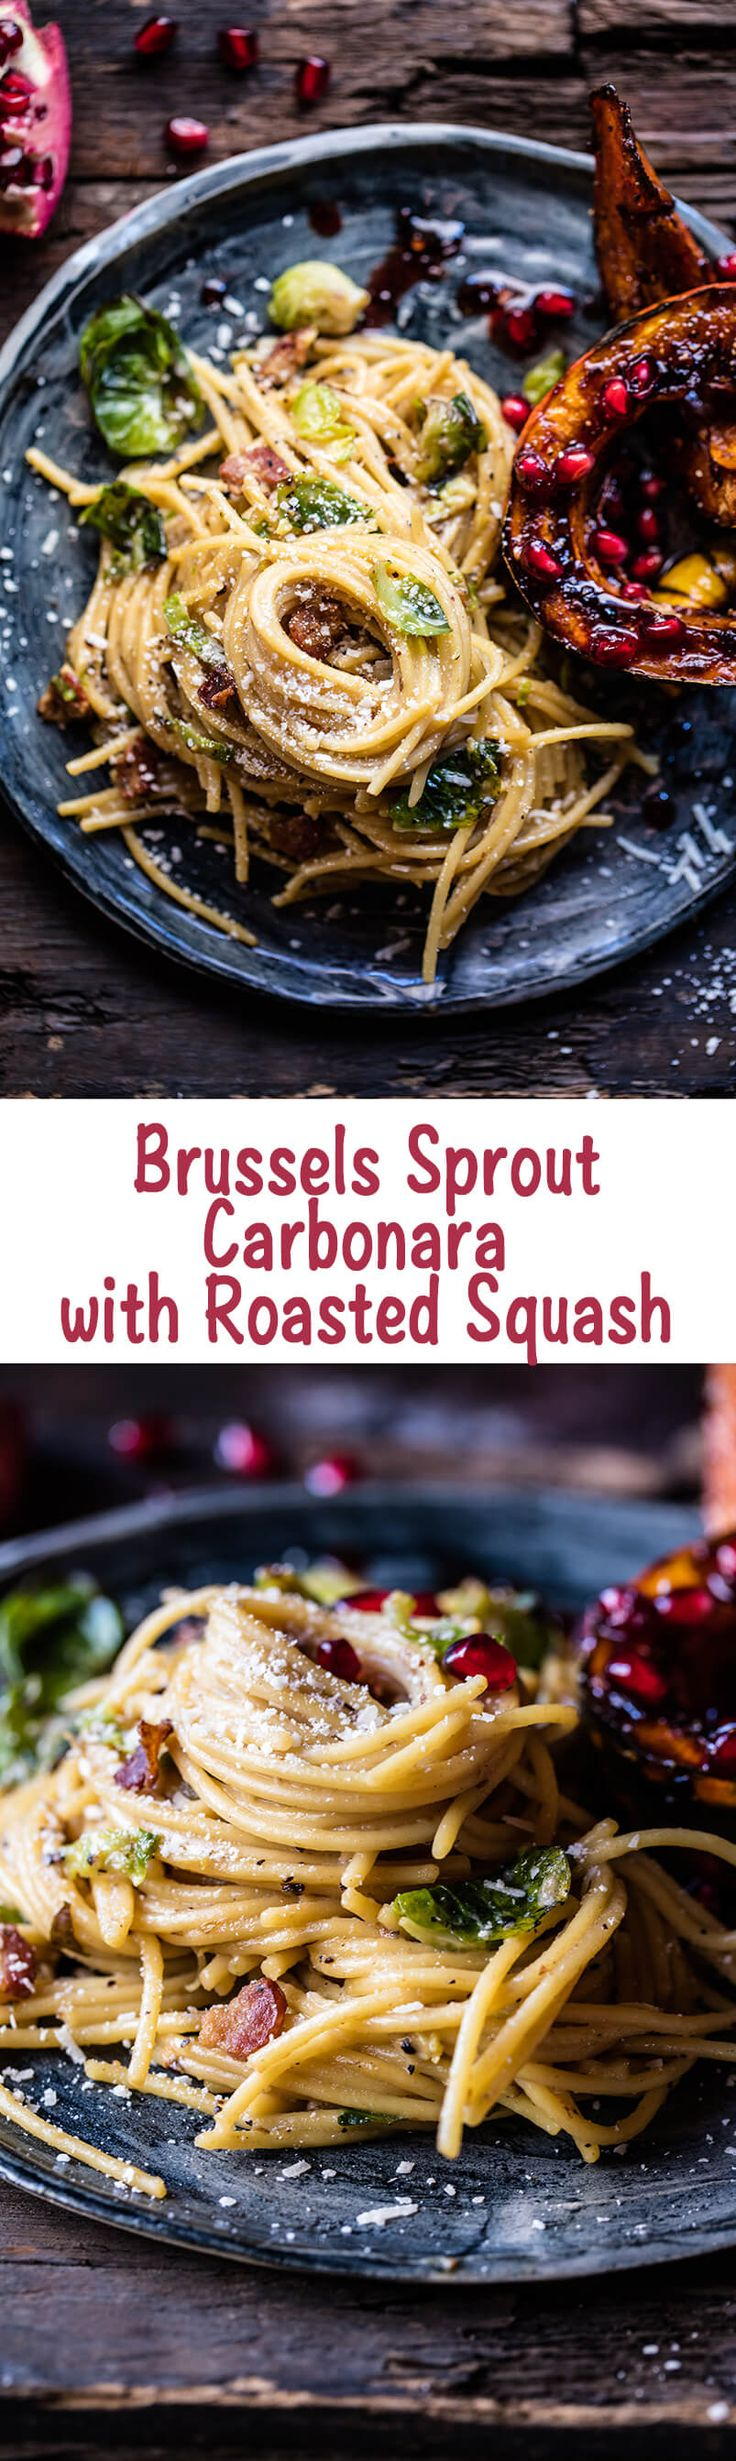 Brussels Sprout Carbonara with Pomegranate Roasted Winter Squash | halfbakedharvest.com @hbharvest